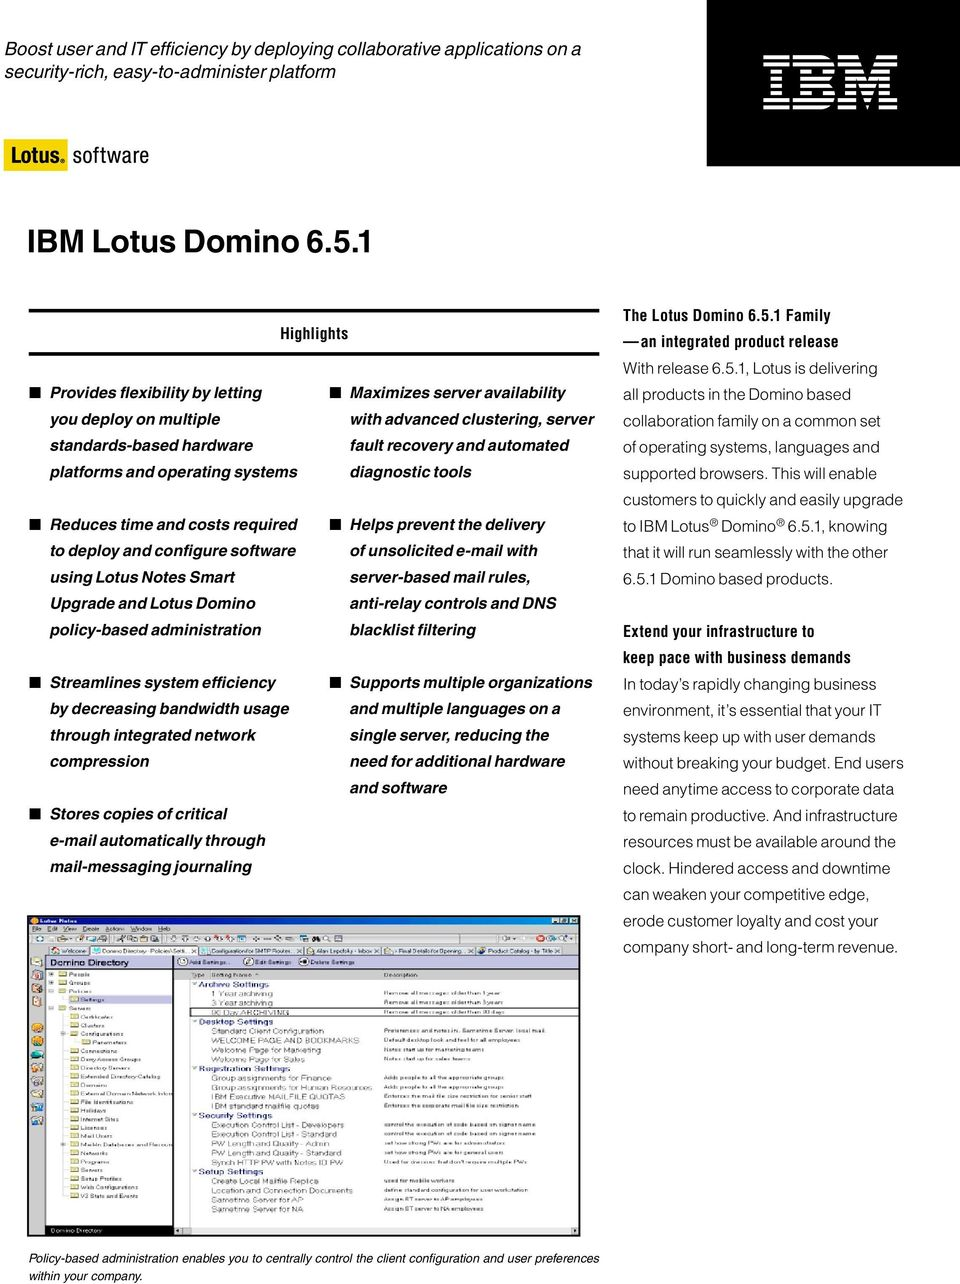 operating systems diagnostic tools Reduces time and costs required Helps prevent the delivery to deploy and configure software of unsolicited e-mail with using Lotus Notes Smart server-based mail